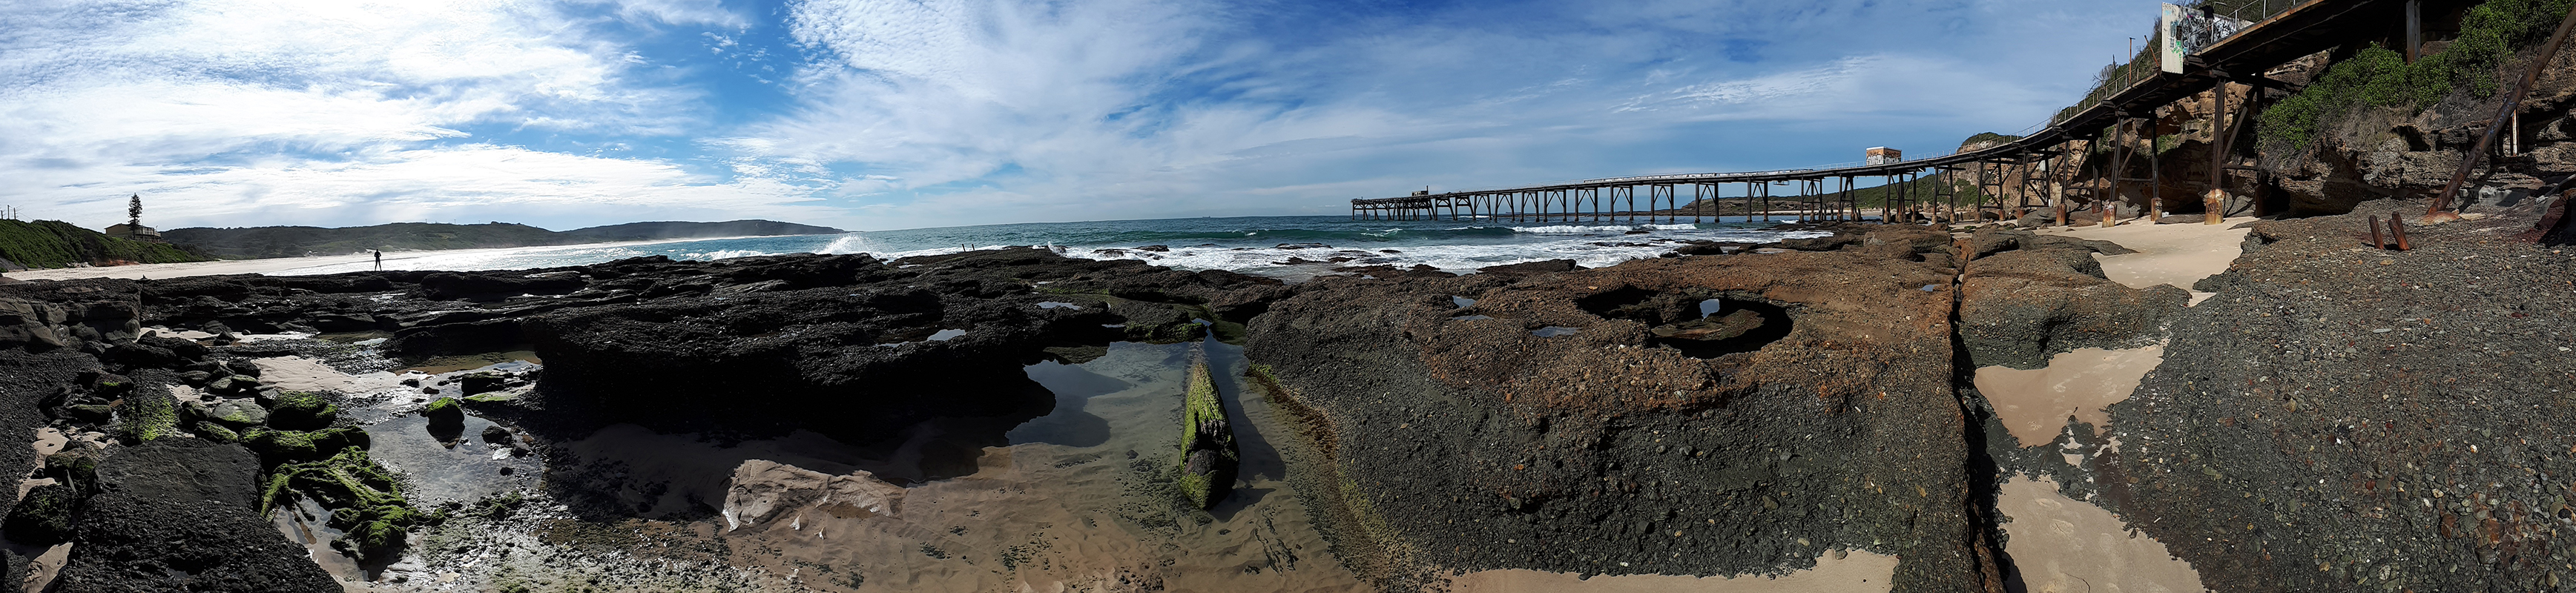 photograph of the rock pools at low tide at catherine hill bay looking at the pacific ocean